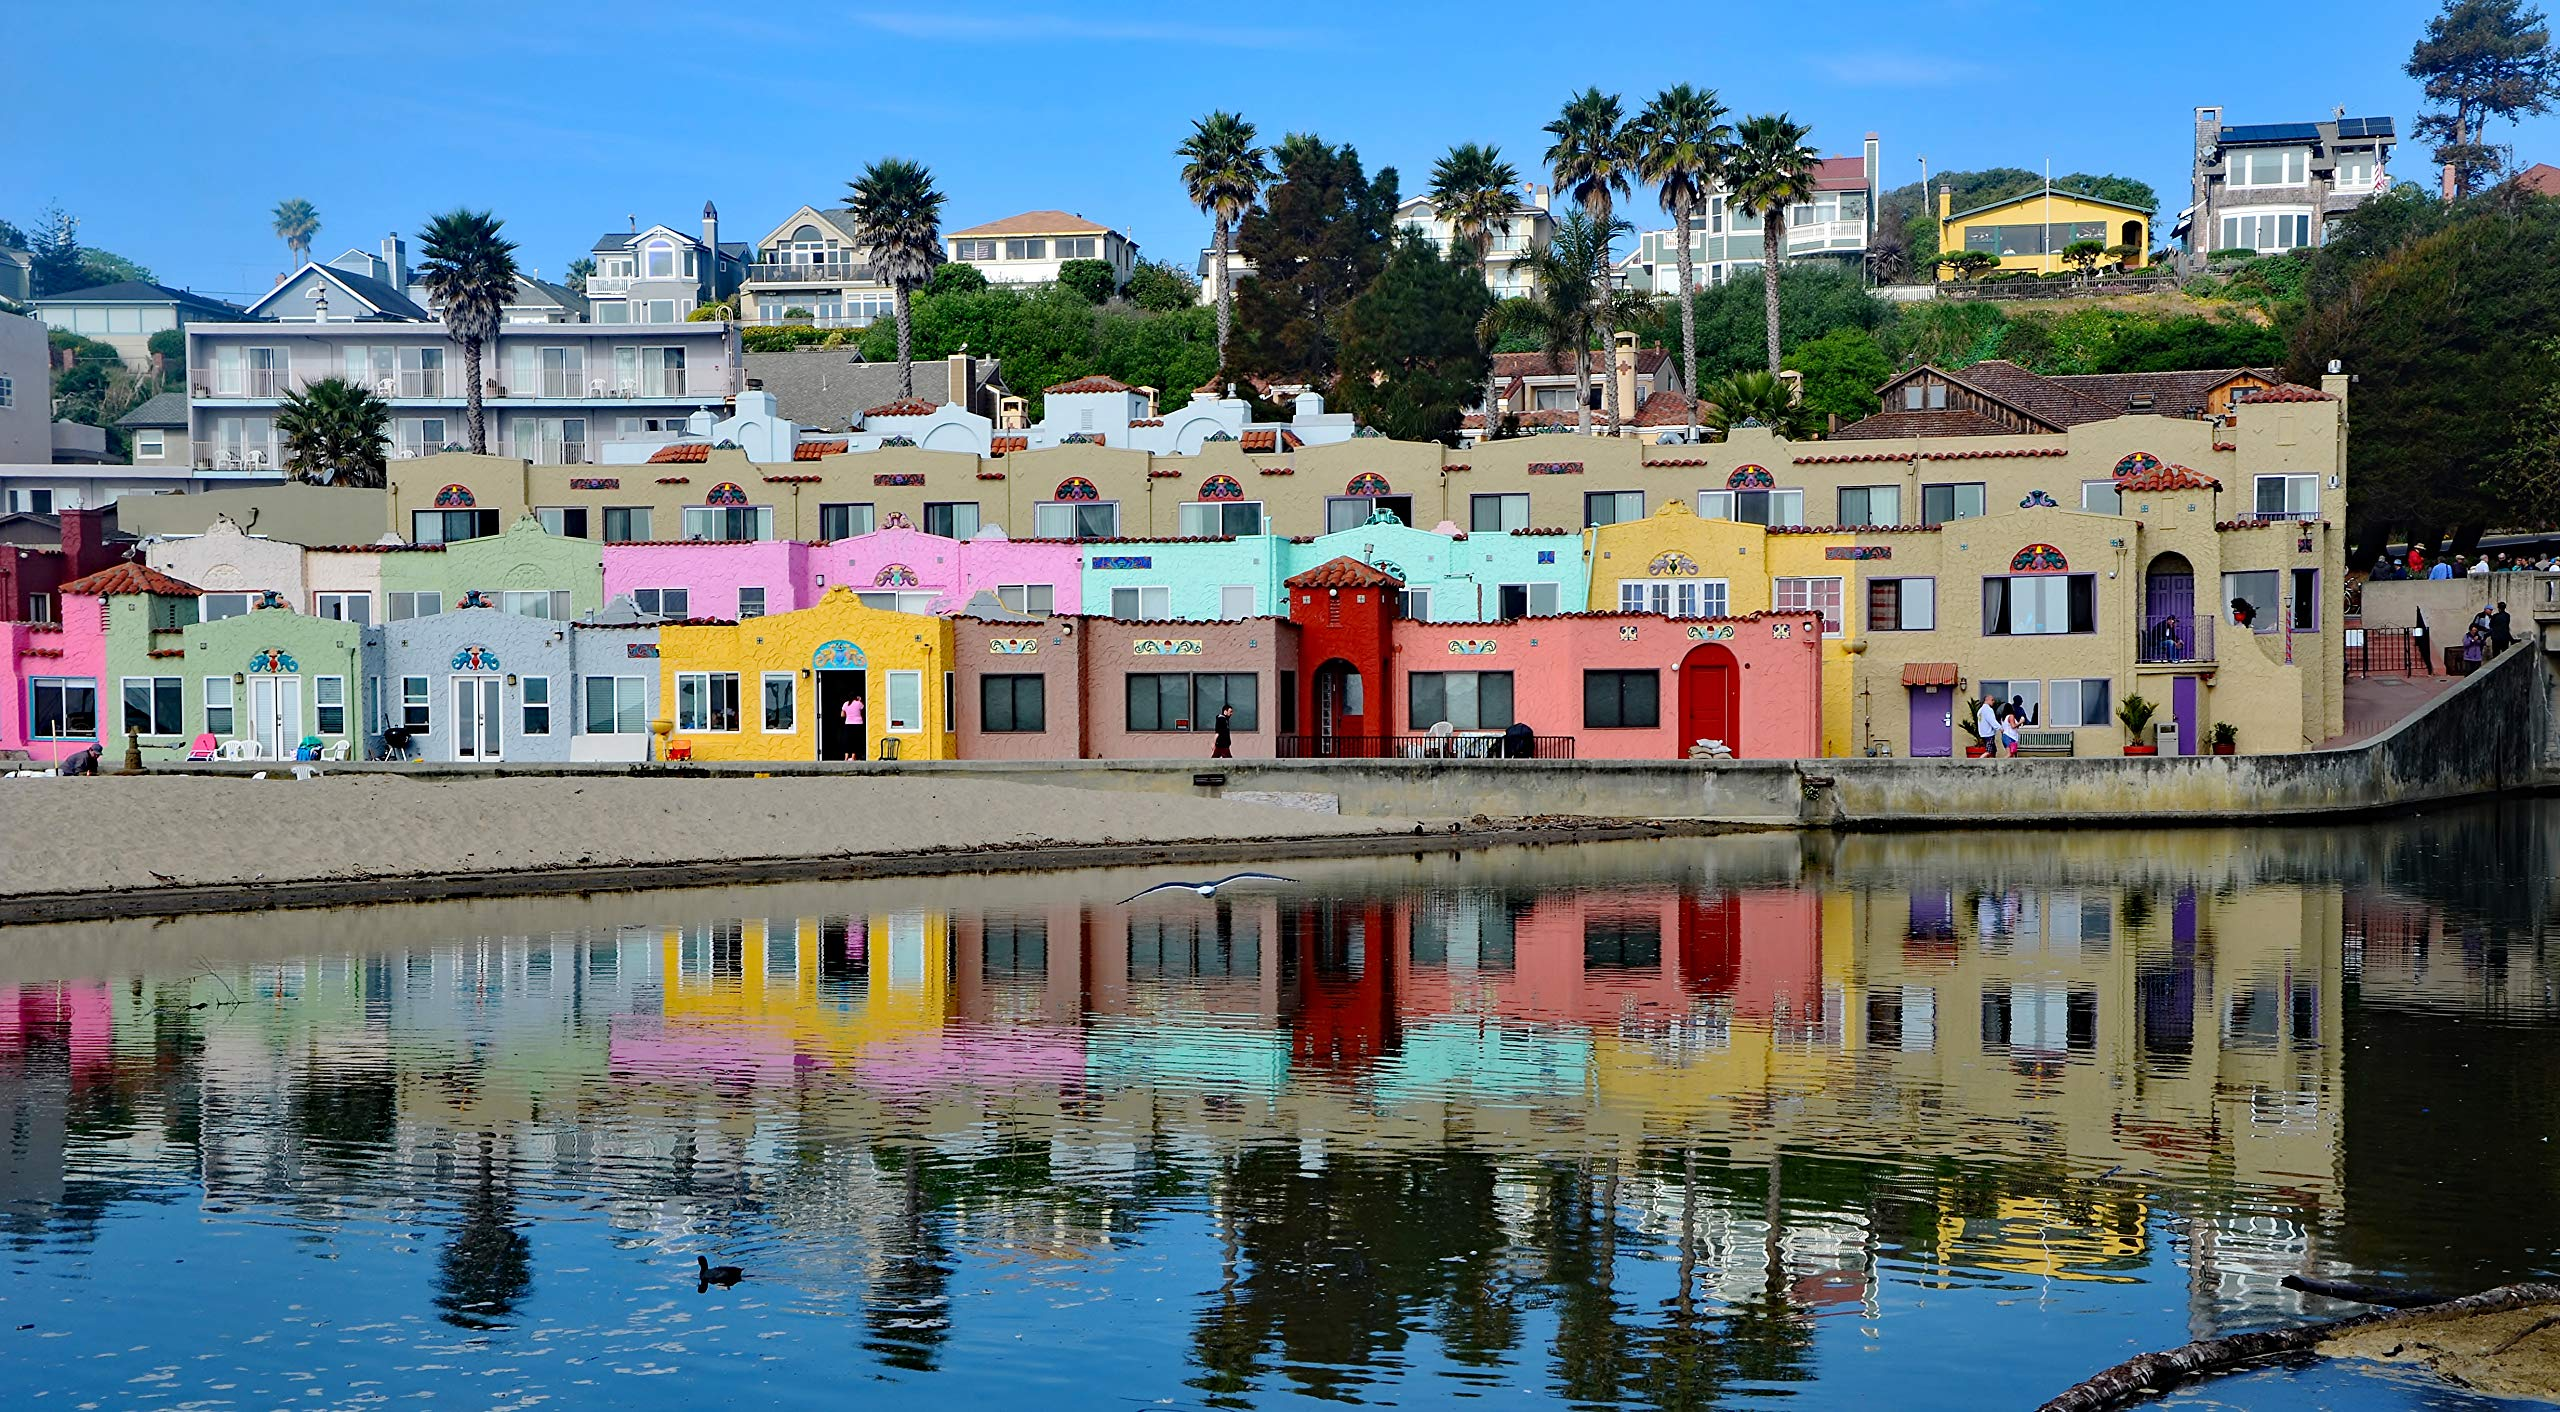 The Colorful Capitola Venetian Hotel - Panorama View